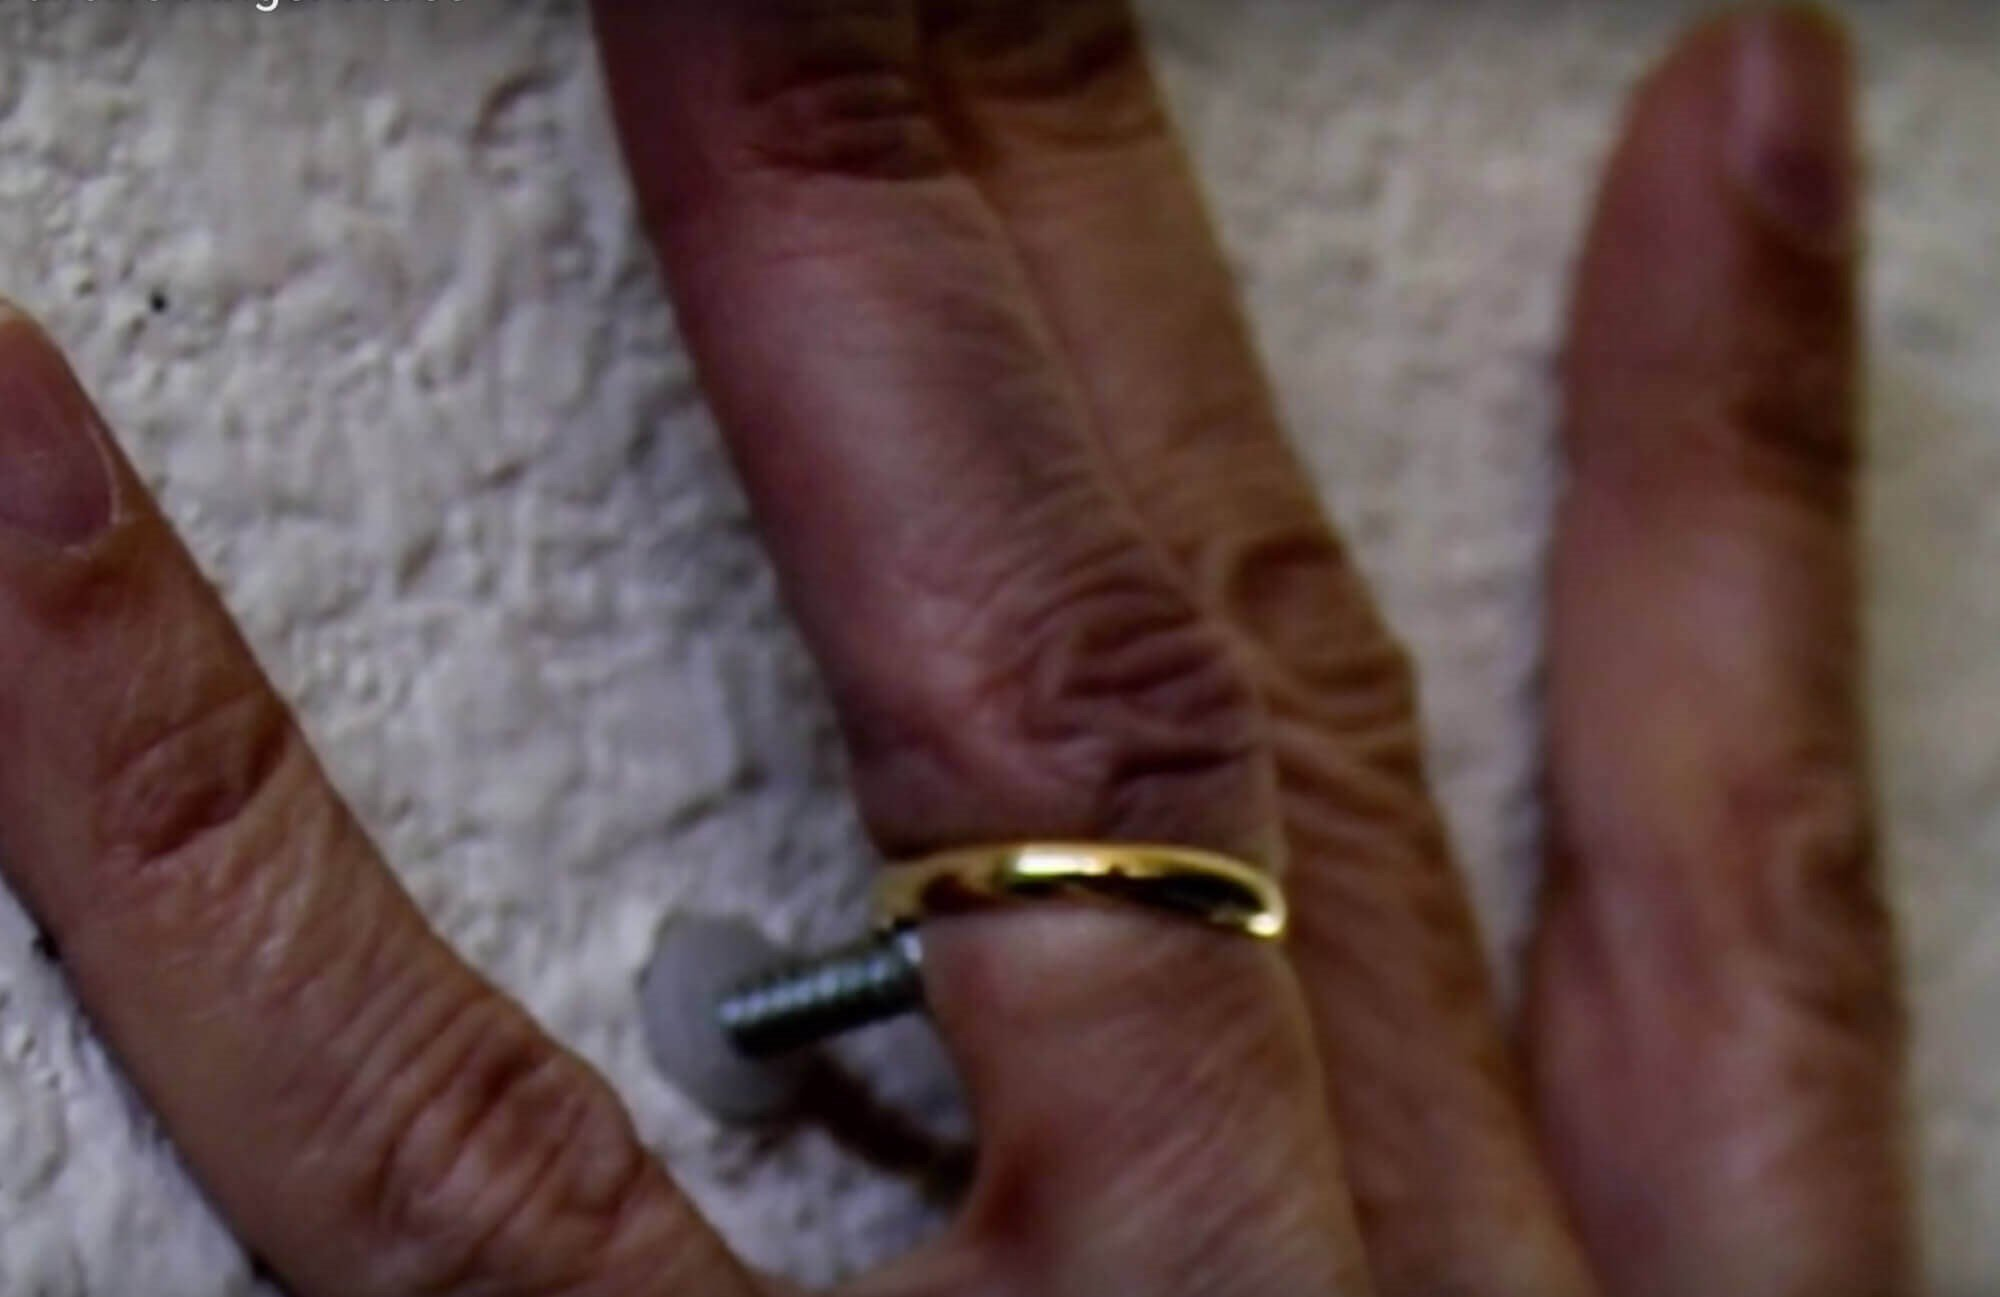 Ring Avulsion Mechanism, wedding ring catches on nail